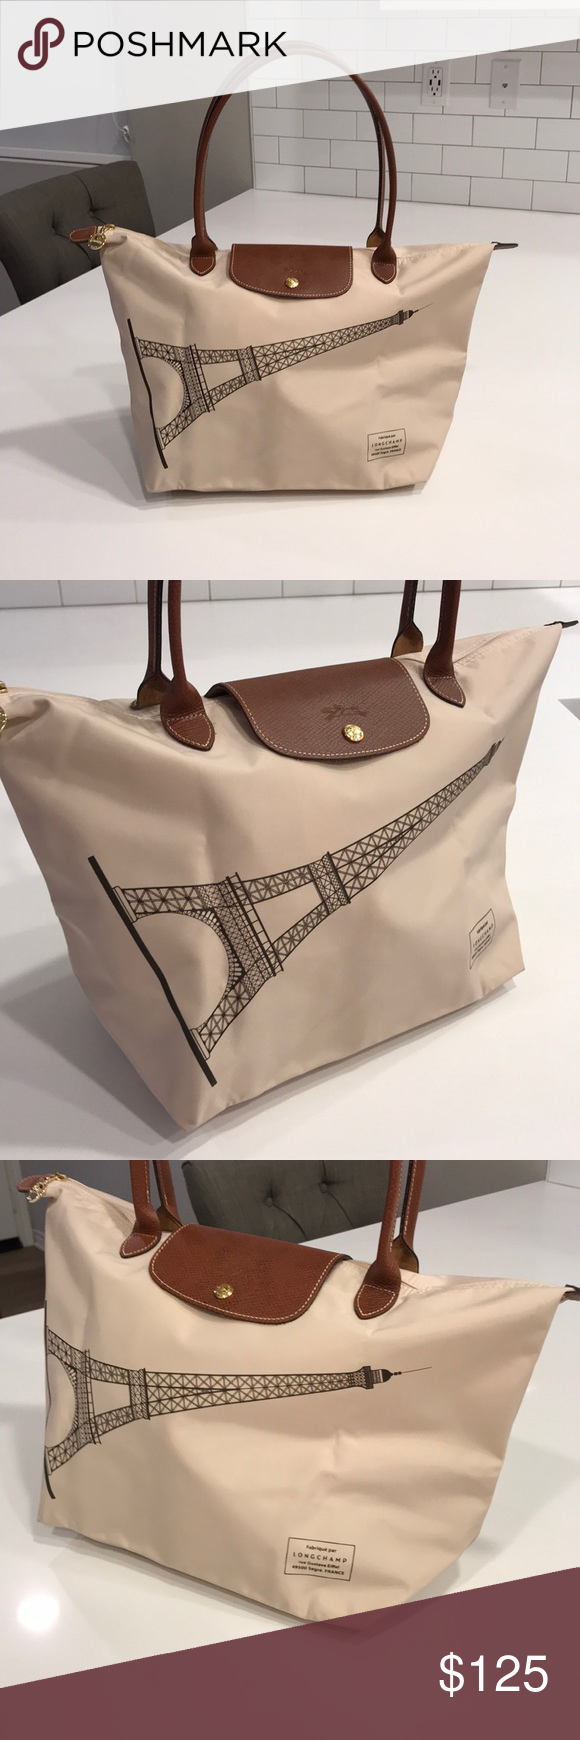 a9ad6dd2e94e Longchamp Le Pliage Large Limited Edition Paris Longchamp Le Pliage Large  Tote - Limited Edition Paris Eiffel Tower Print. Purchased from the  Longchamp ...